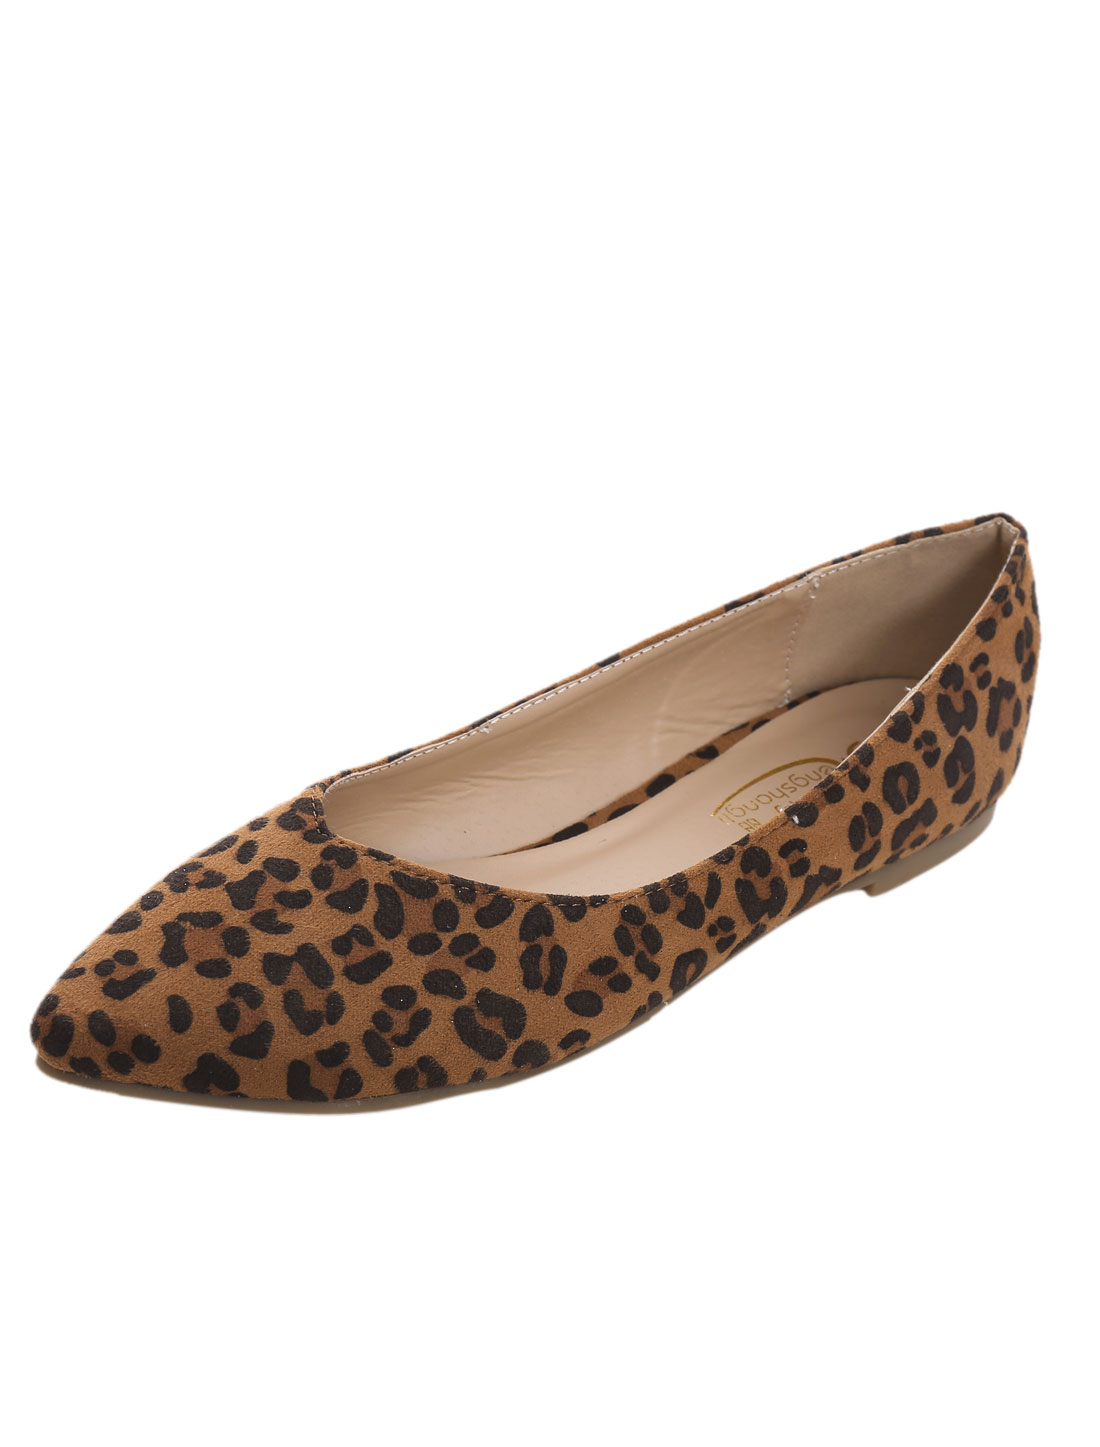 Women Leopard Pointed Toe Padded Insole Casual Flats Shoes Brown US 8.5